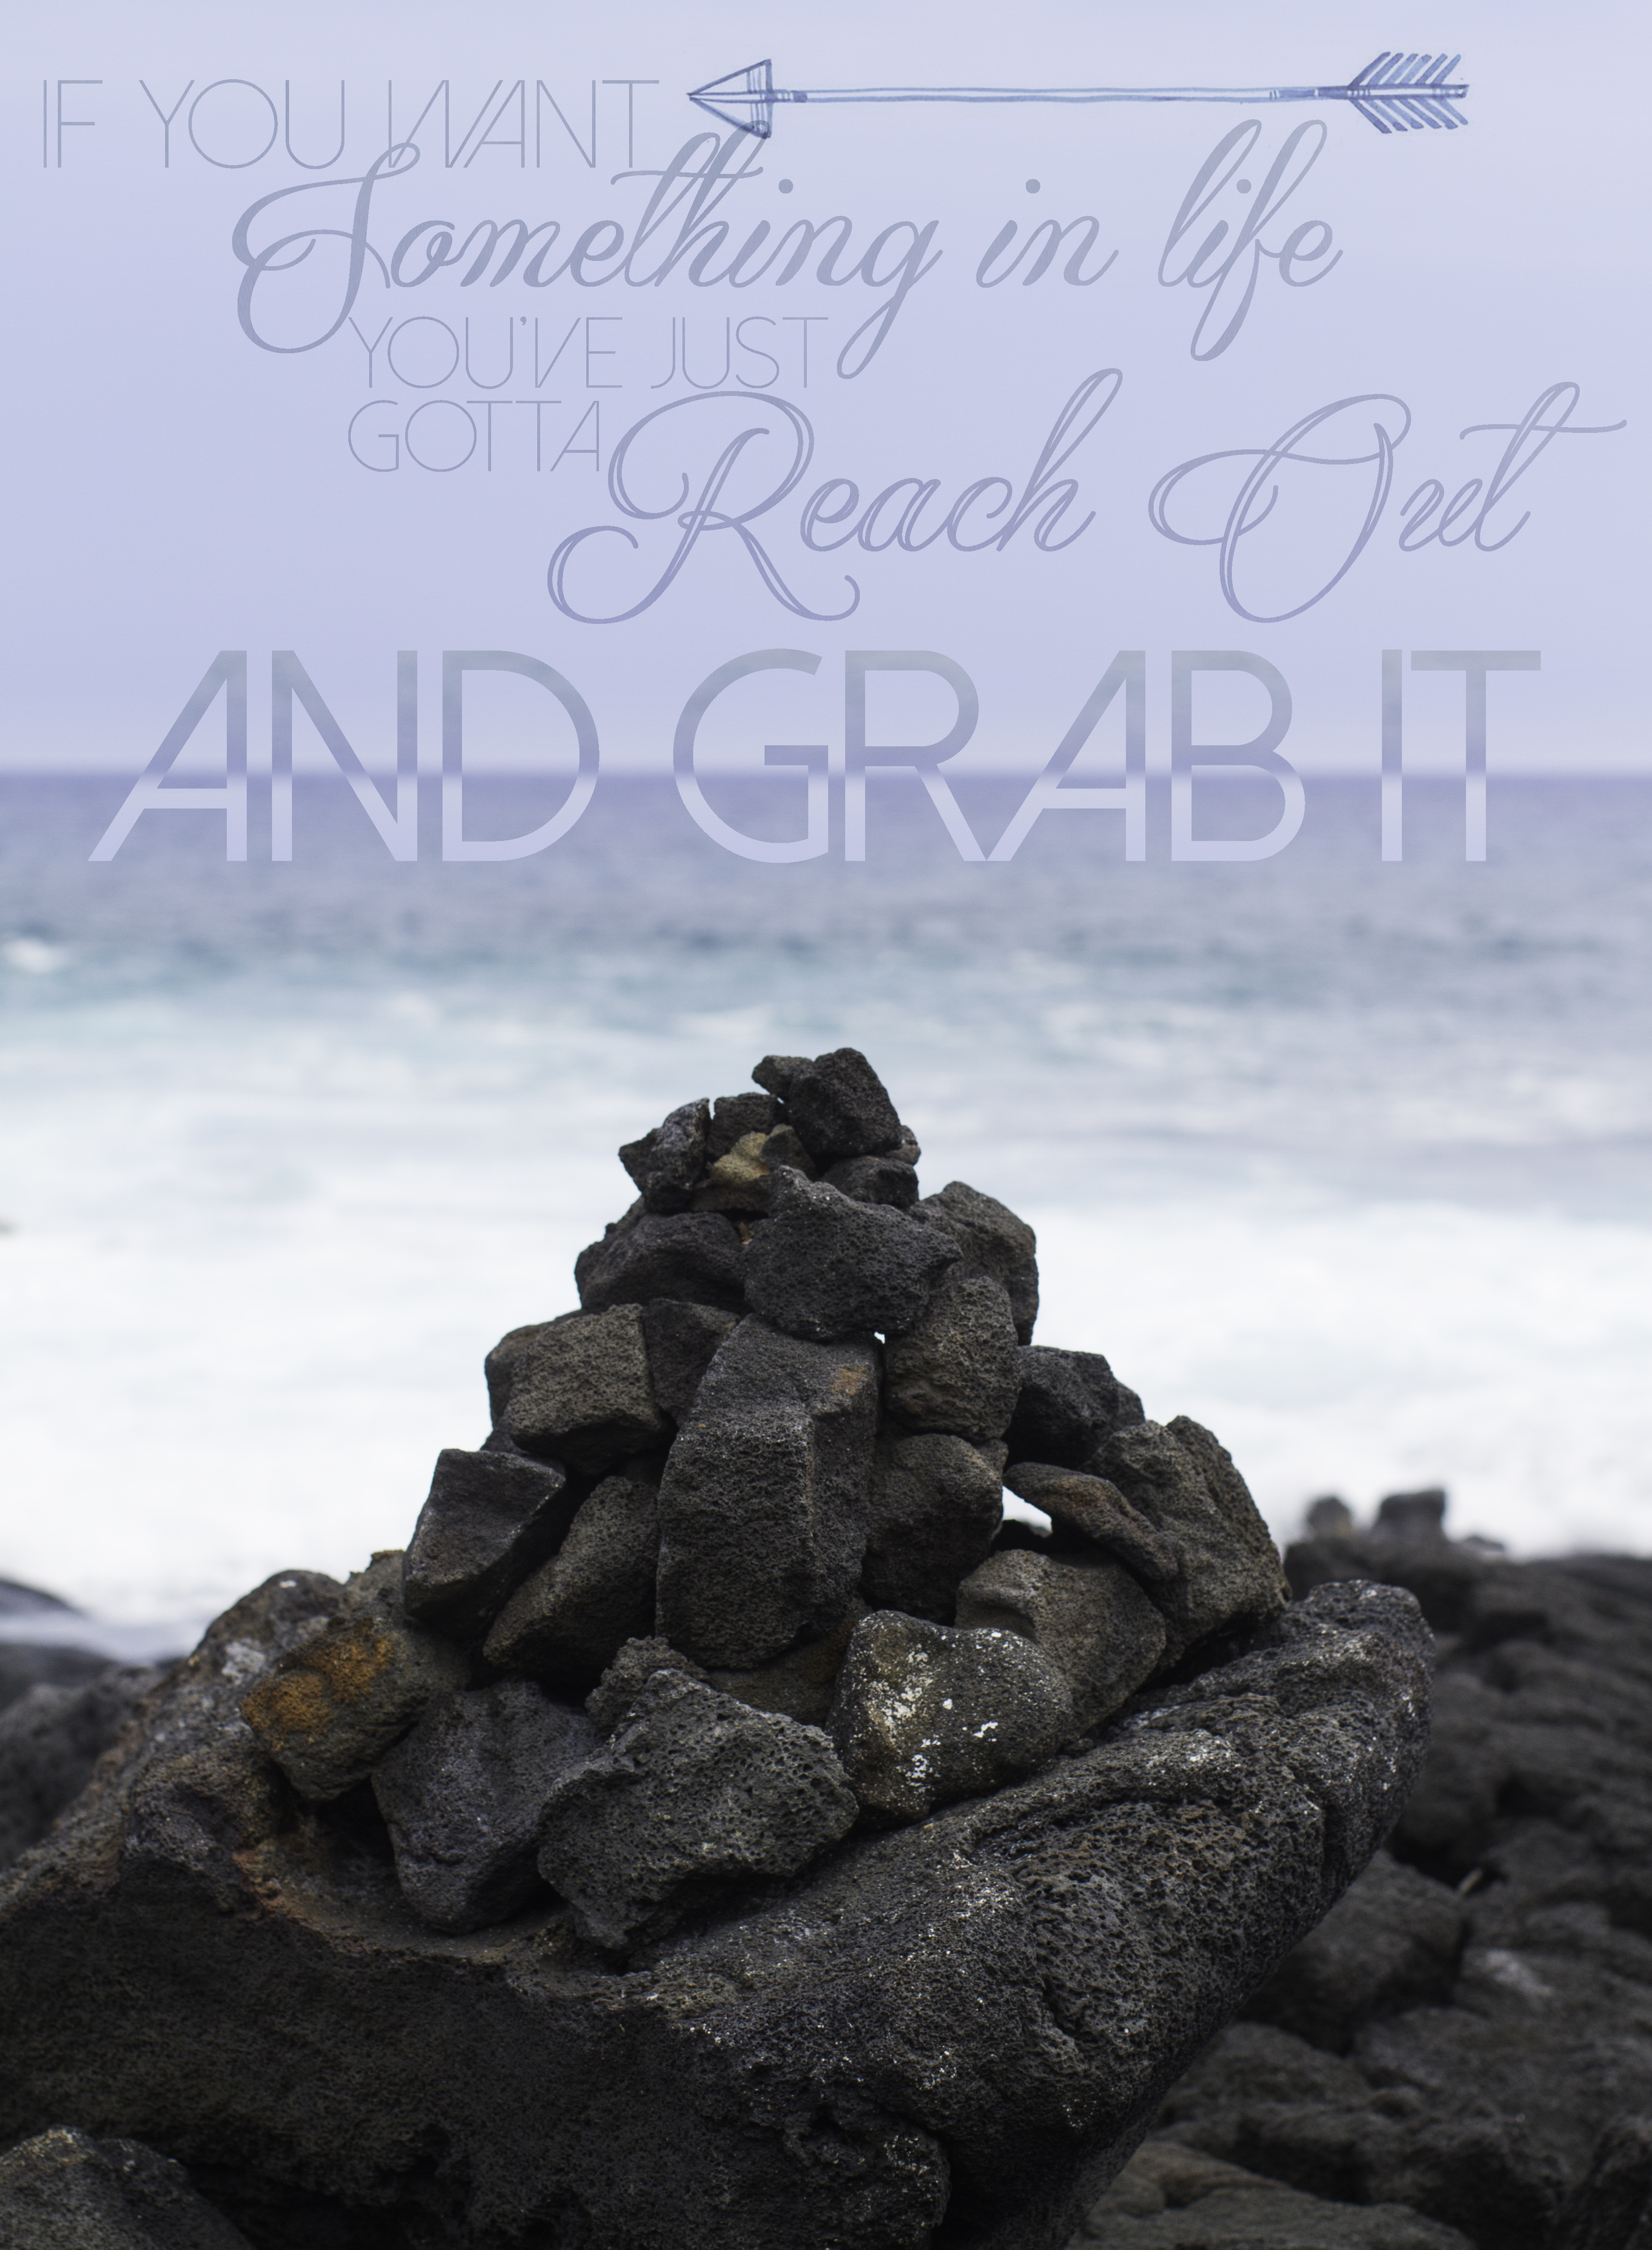 This is a cairn that I built on the shores in Hawaii. We were asking God to direct us in prayer and photography, and He told me to build a cairn, which is just a pile of rocks that guides hikers on the trail. It gives them direction. God wants us to pray for direction instead of just trying to figure it out ourselves, but He can't do much if we refuse to get up.